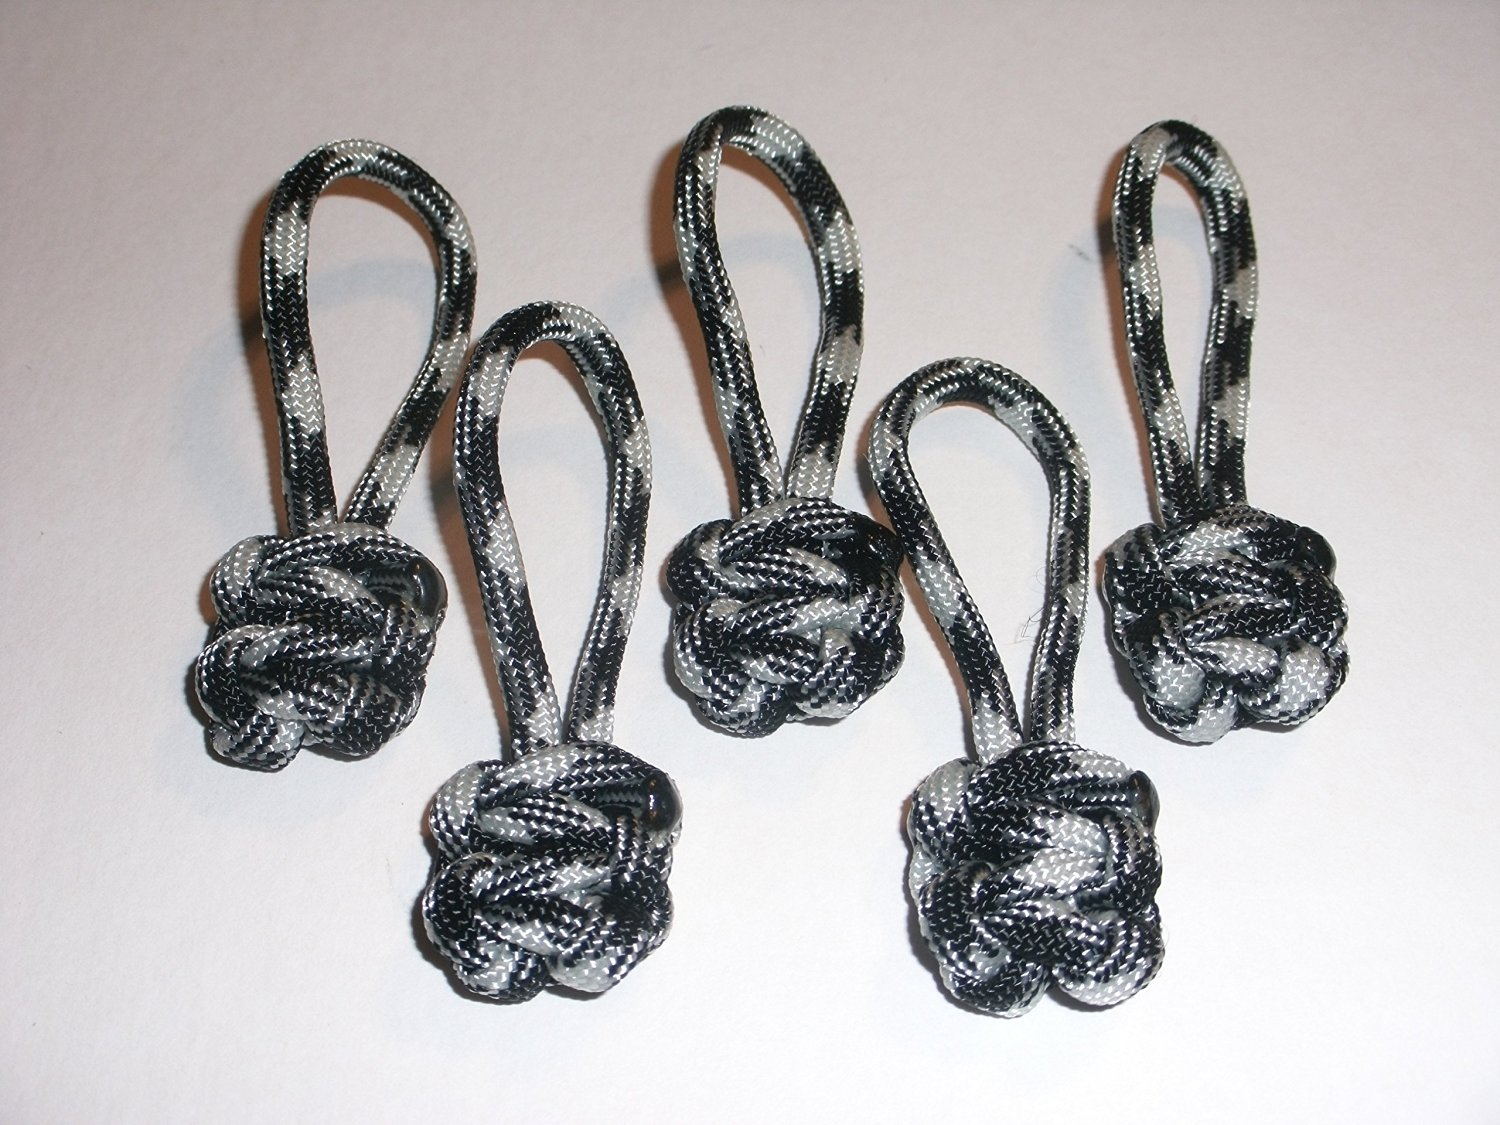 RedVex Paracord Zipper Pulls / Lanyards - Lot of 5 - ~2.5 - Black & White